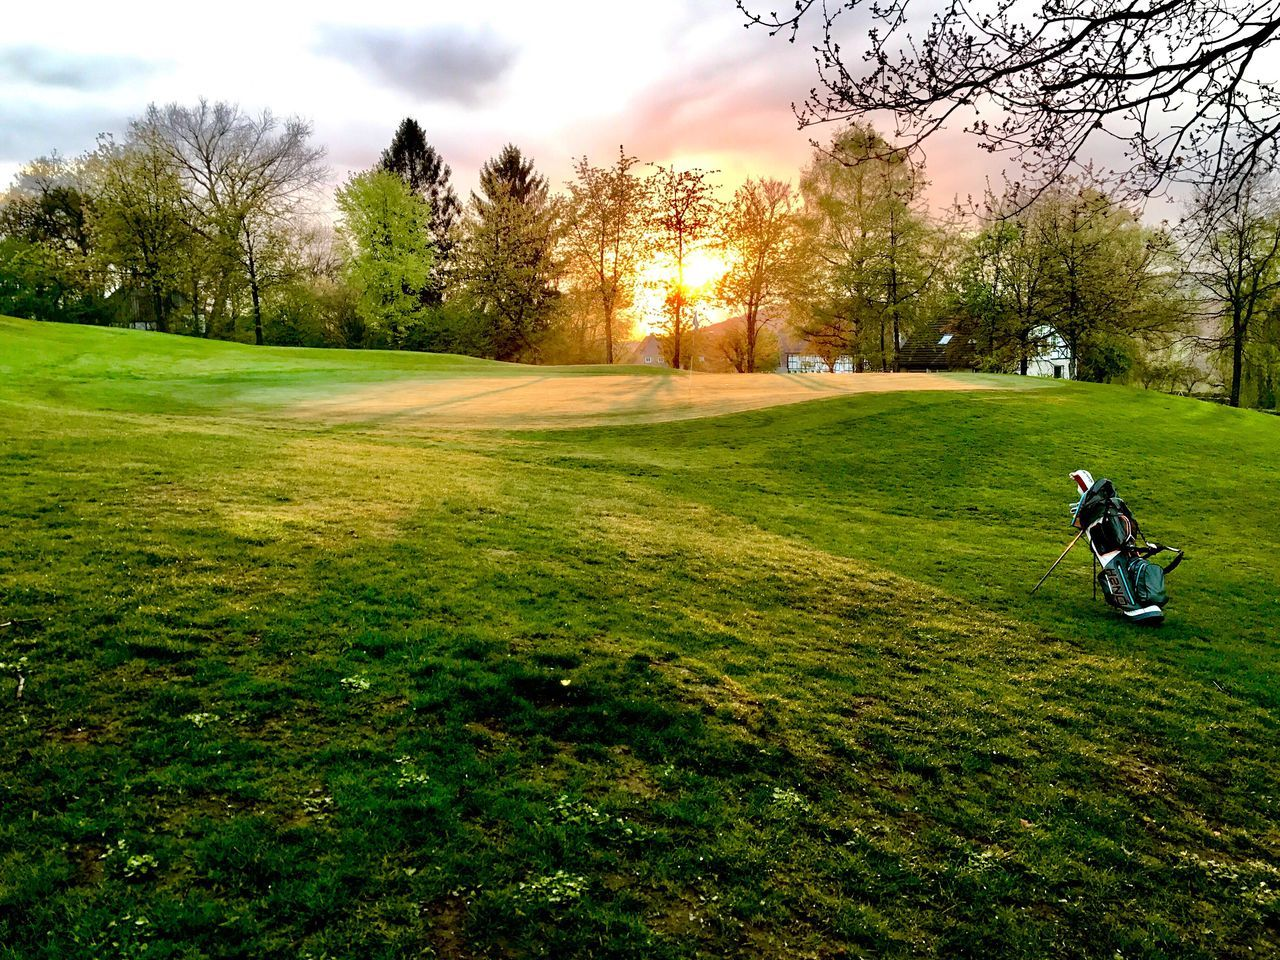 grass, tree, golf course, golf, field, leisure activity, green color, nature, real people, sport, men, transportation, growth, outdoors, land vehicle, beauty in nature, sky, green - golf course, landscape, full length, day, one person, sportsman, golfer, driver - golf club, people